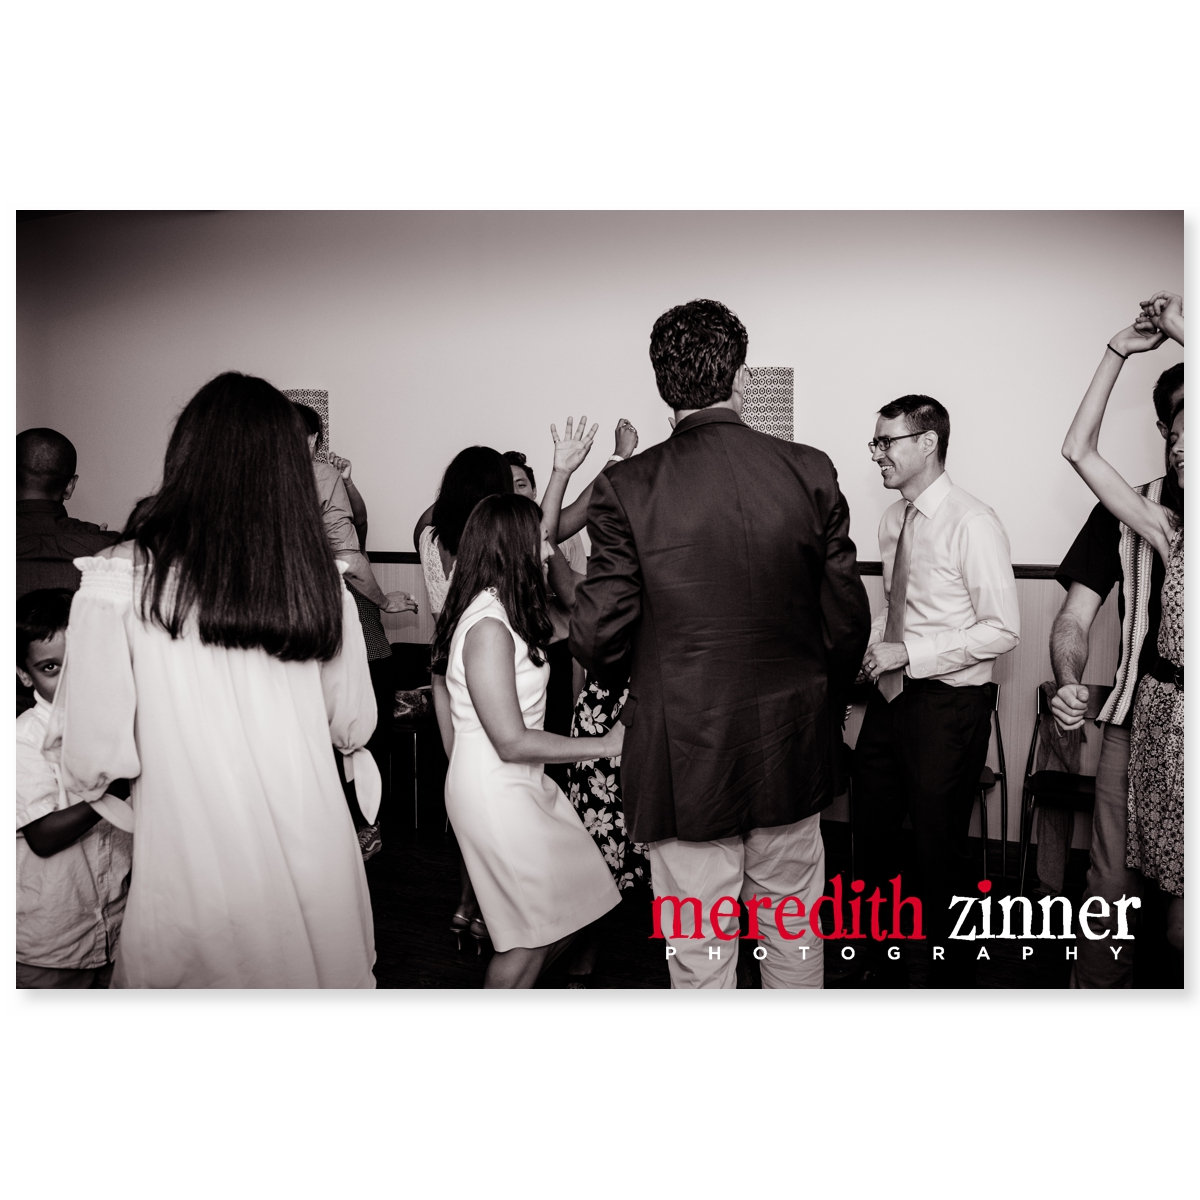 Meredith_Zinner_Photography_StilesCelebration_0361